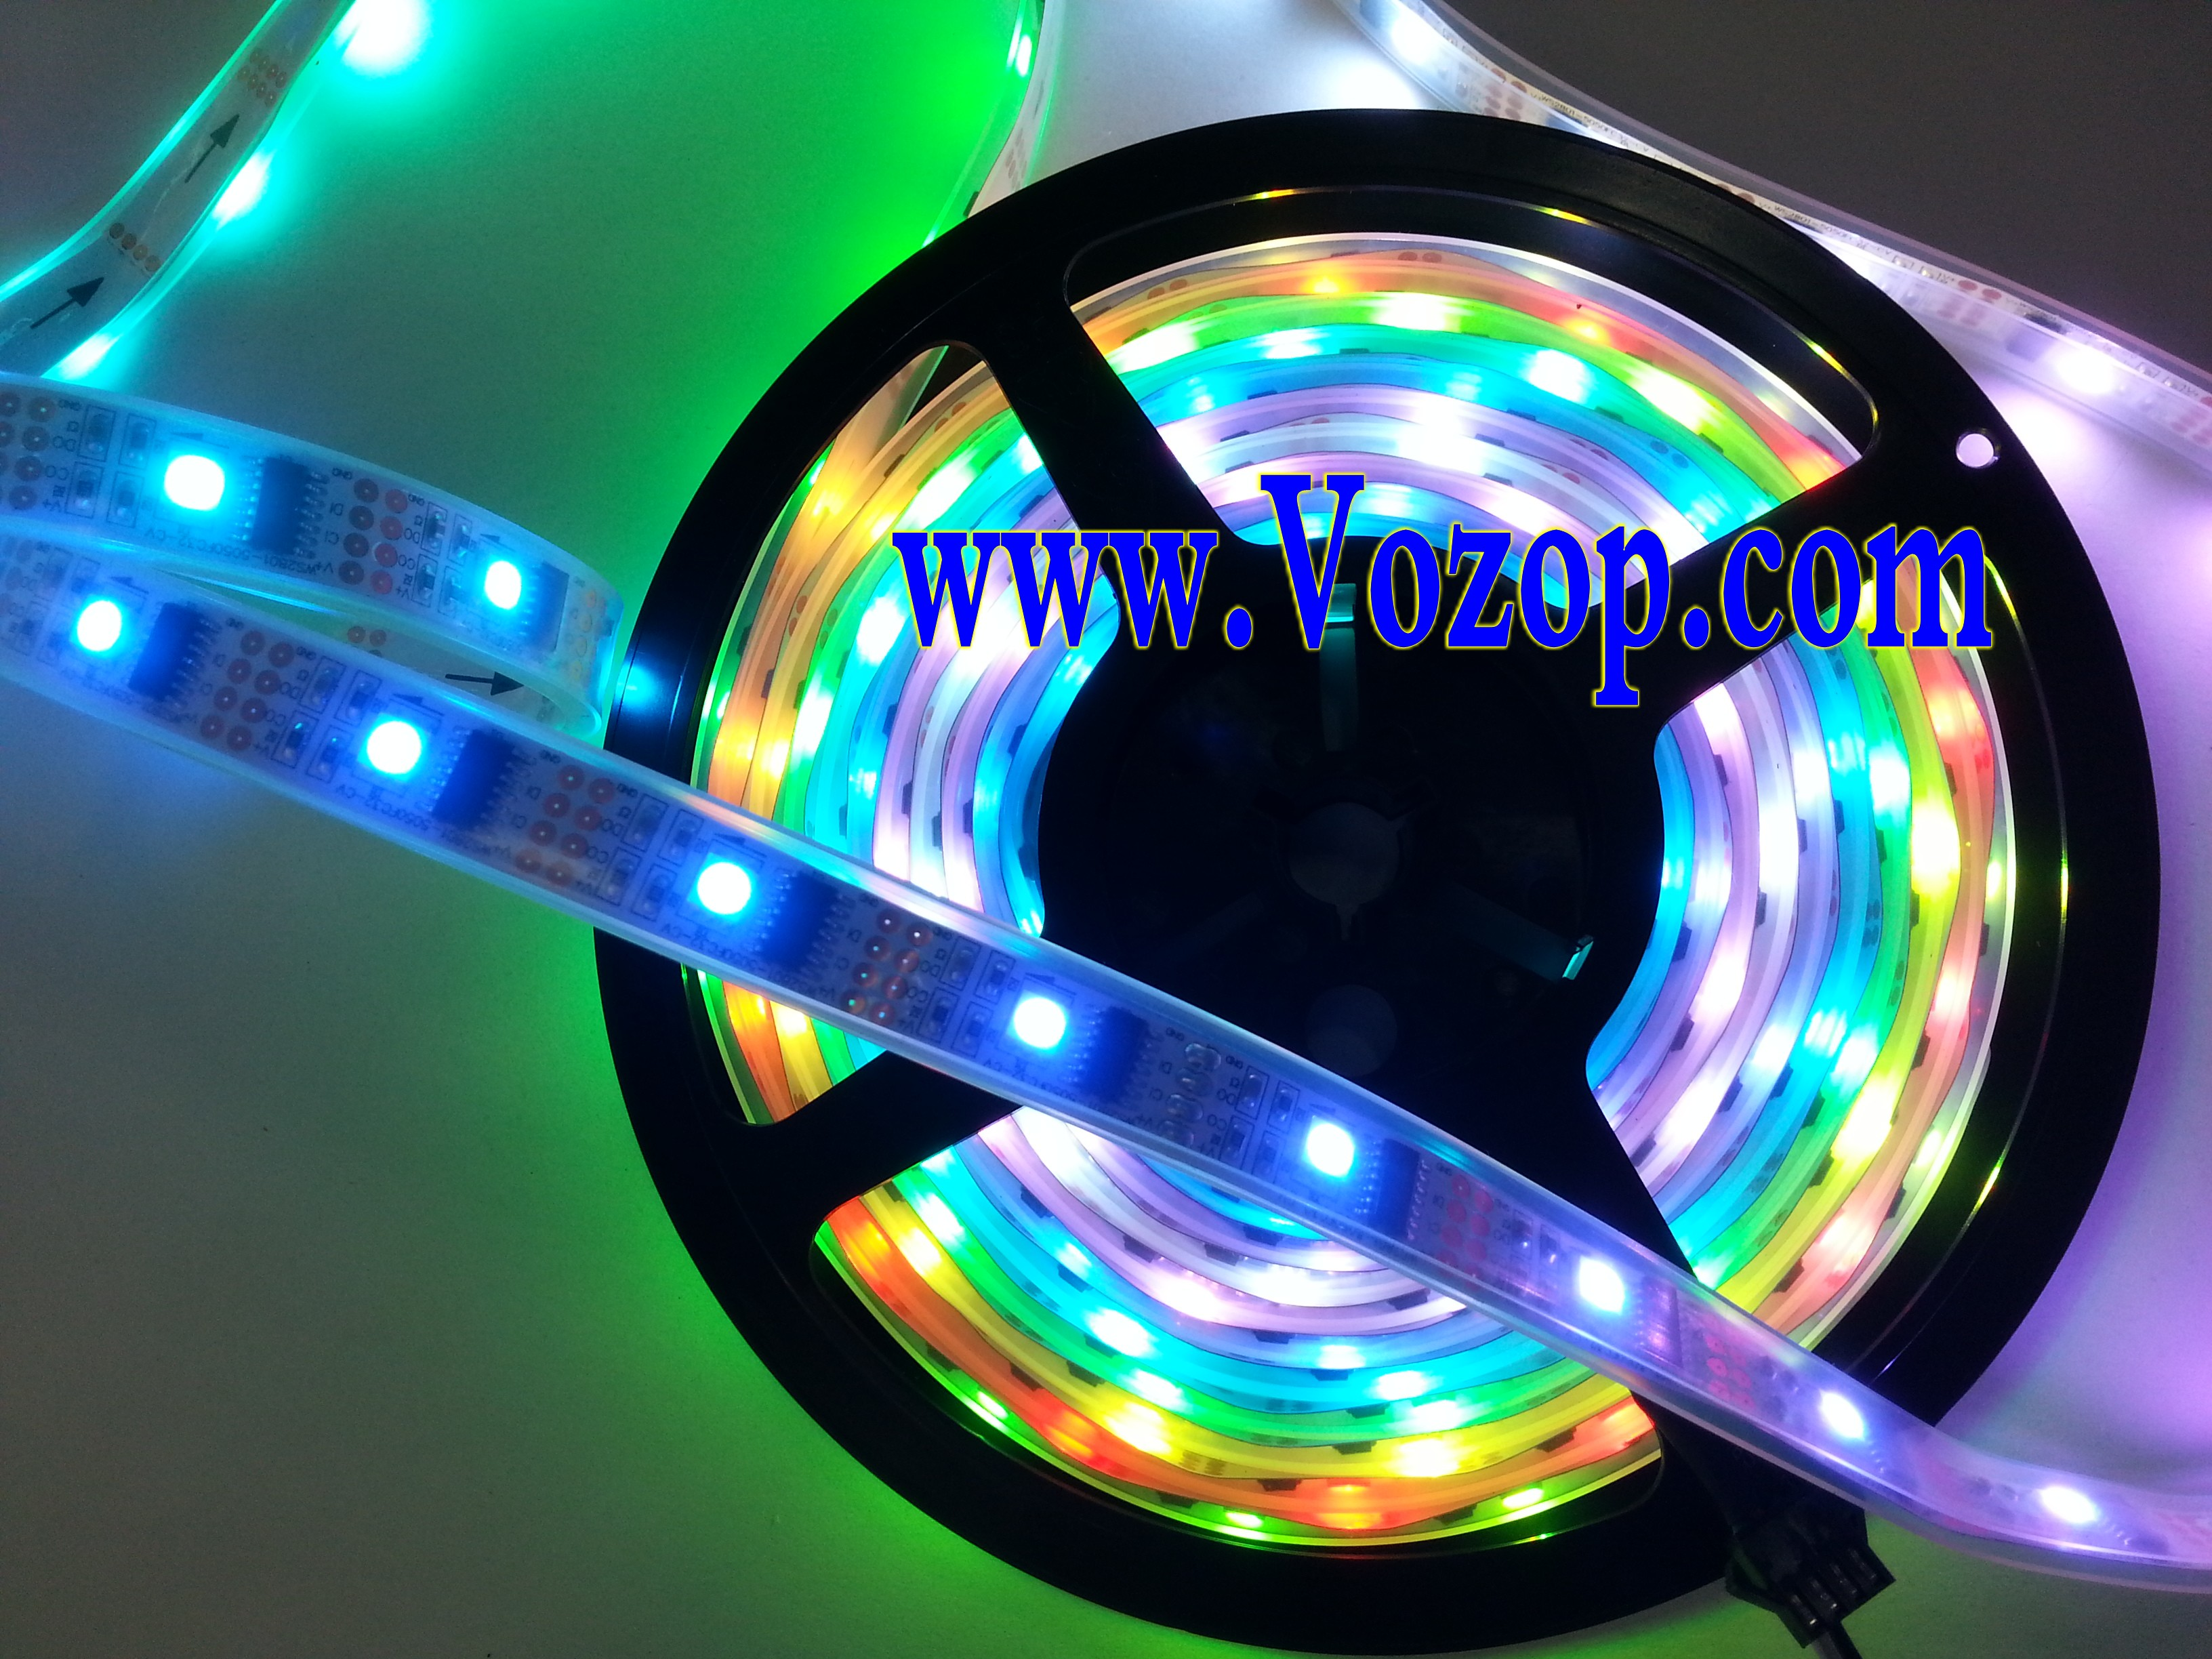 ws2801 rgb strip led pixel light individually addressable 5m 160led 5v led strips led. Black Bedroom Furniture Sets. Home Design Ideas